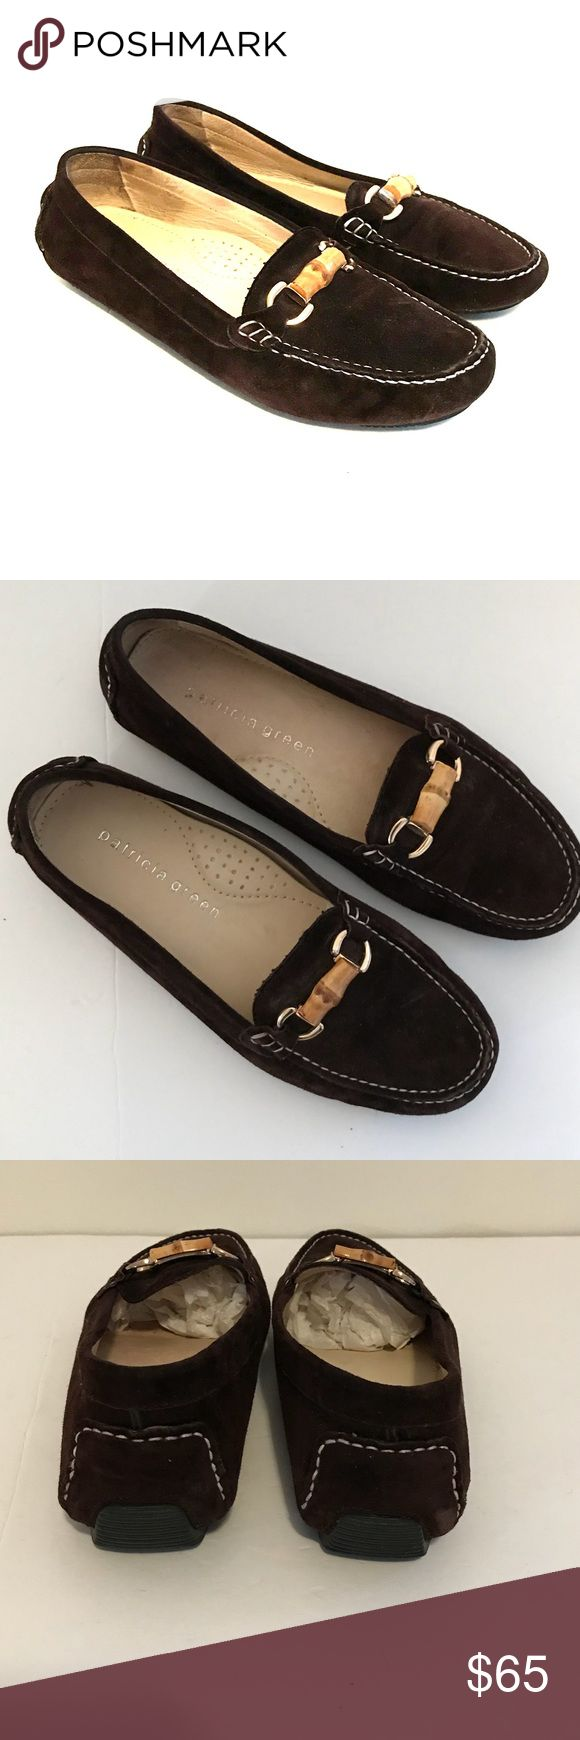 Patricia Green Brown Suede Loafers Size 38 Patricia Green Brown Suede Loafers Size 38. Gently used with almost no wear on the soles. Patricia Green Shoes Flats & Loafers